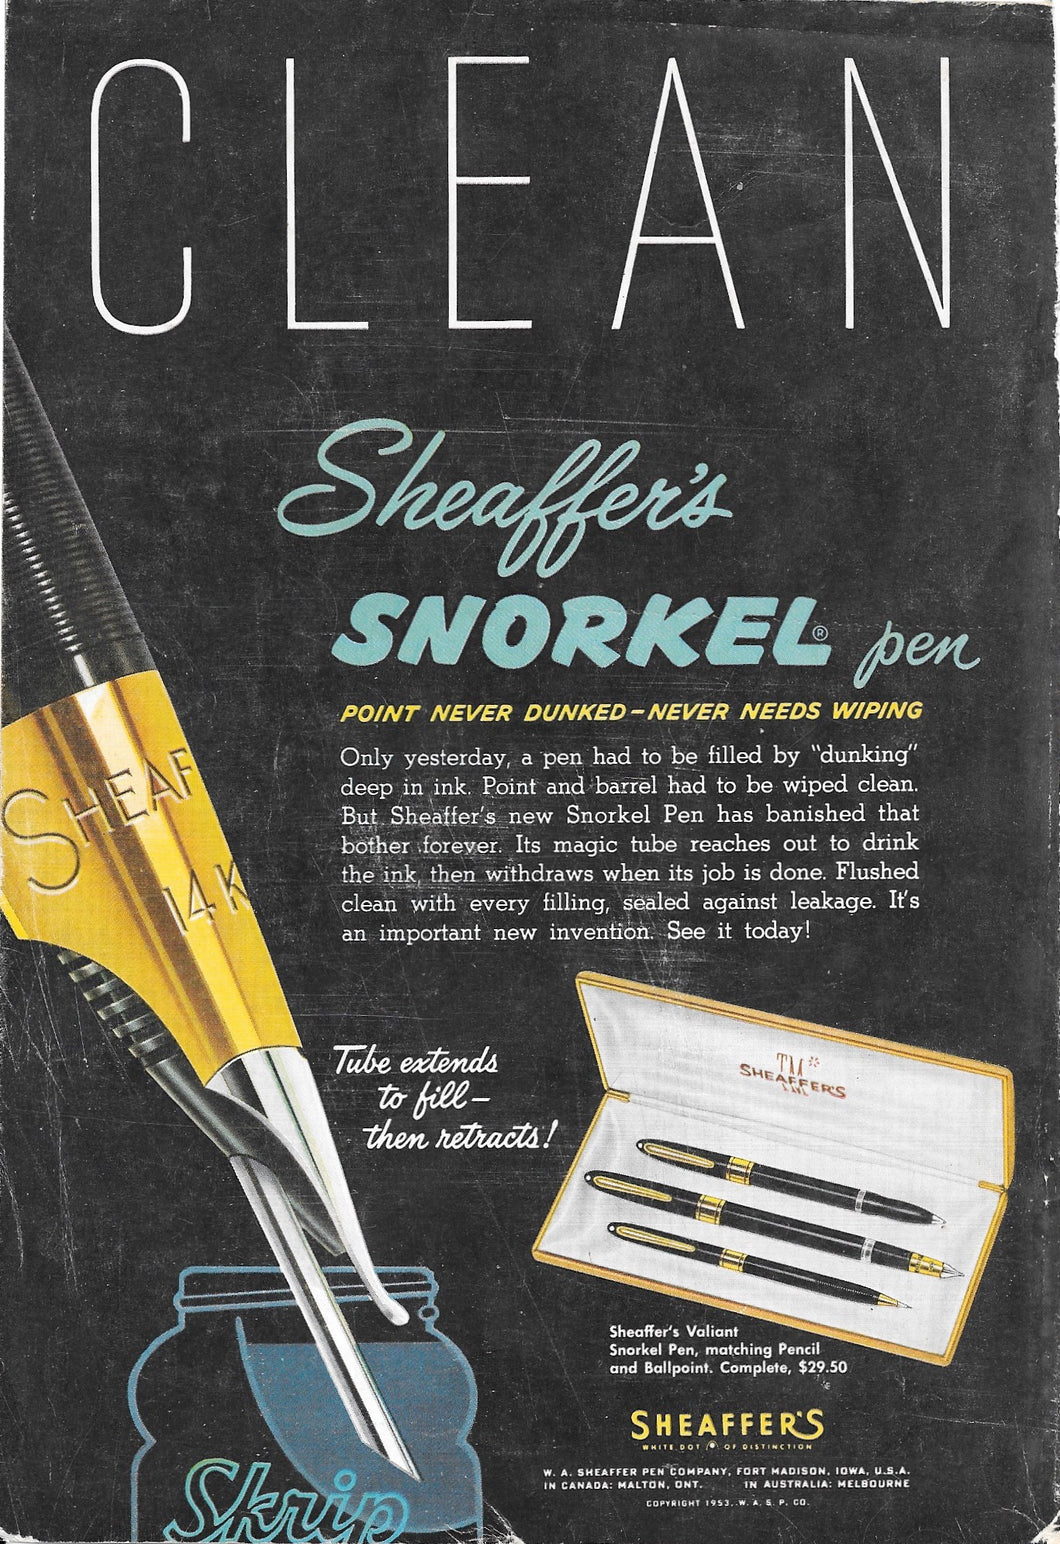 Sheaffer's Valiant TM Snorkel